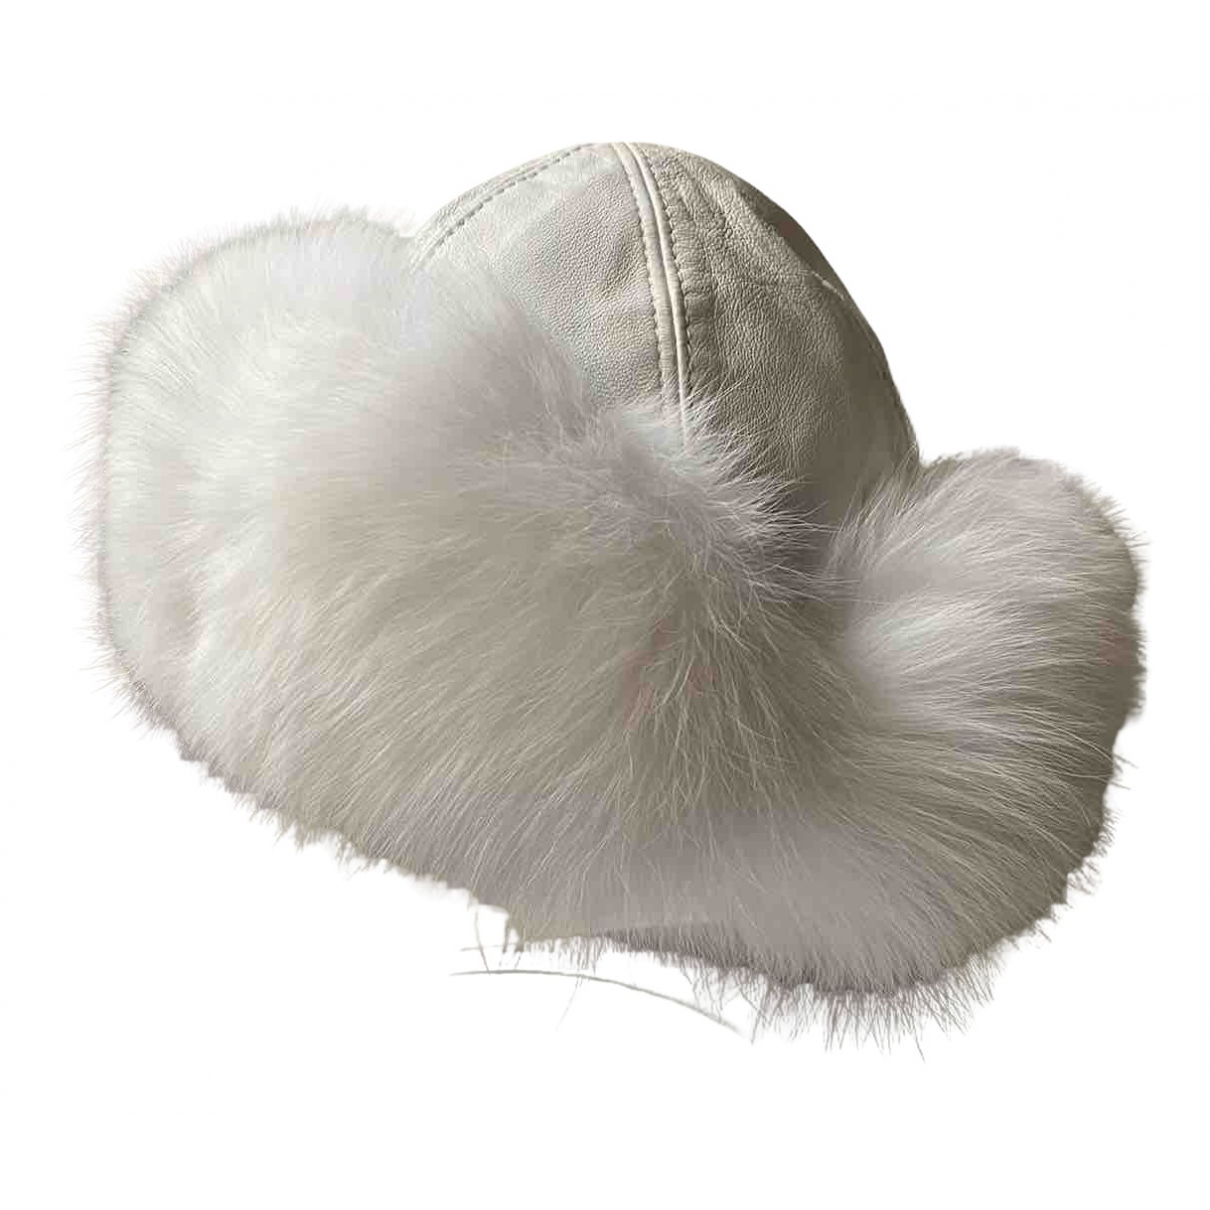 Non Signé / Unsigned N White Fox hat for Women 58 cm